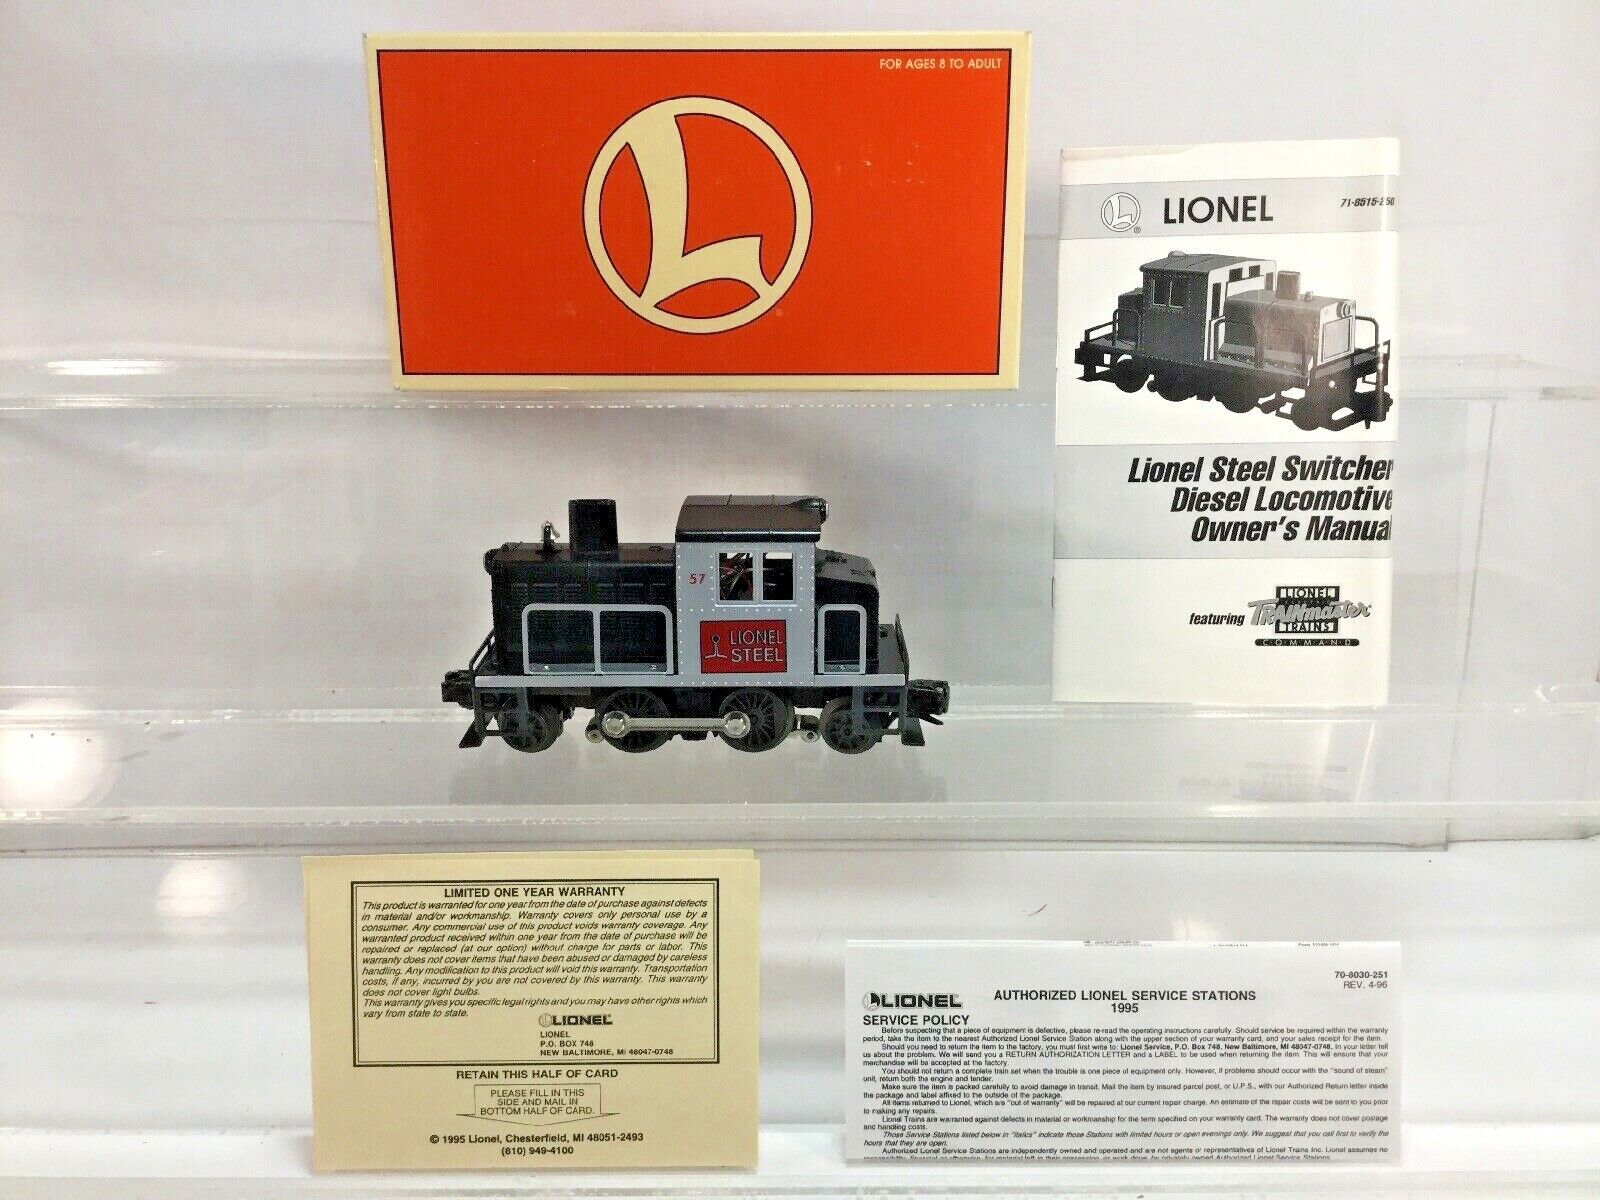 Lionel Electric Train 6-18515 57 Lionel Steel Switcher Command Boxed